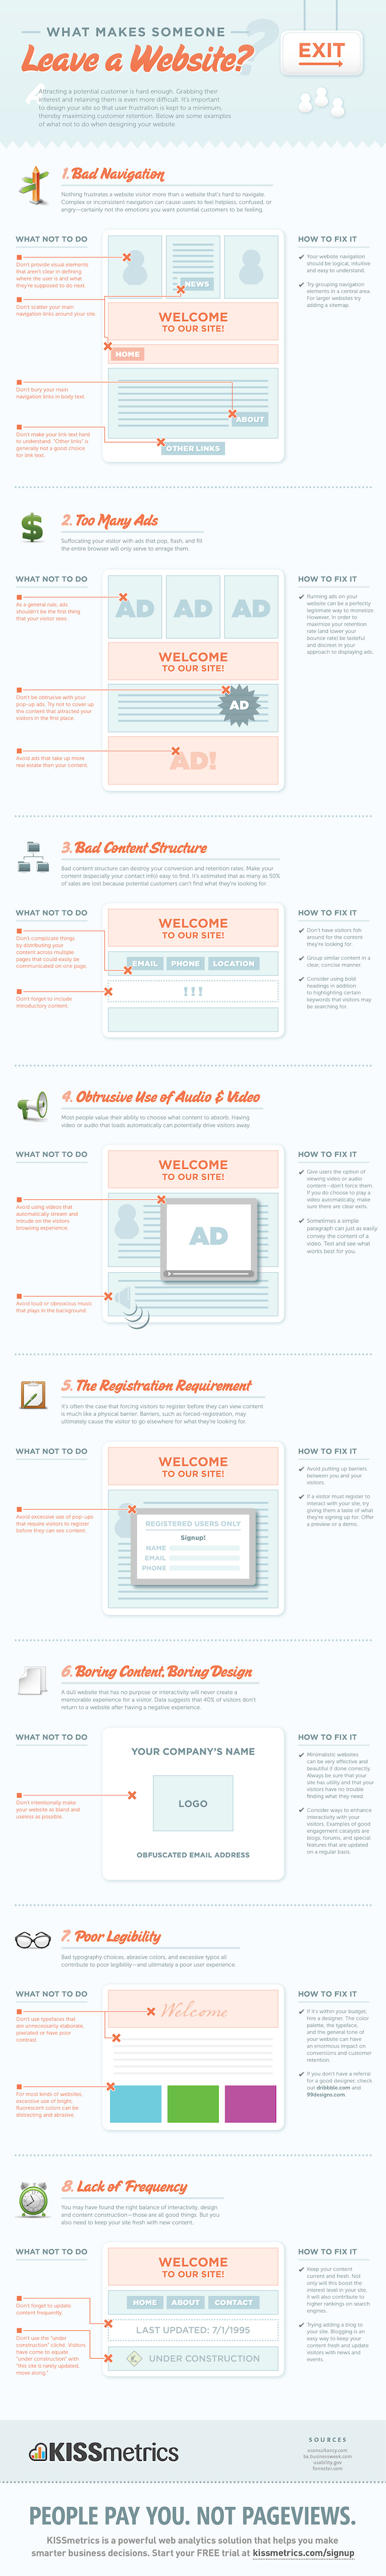 Why People Leave Your Website [Infographic]